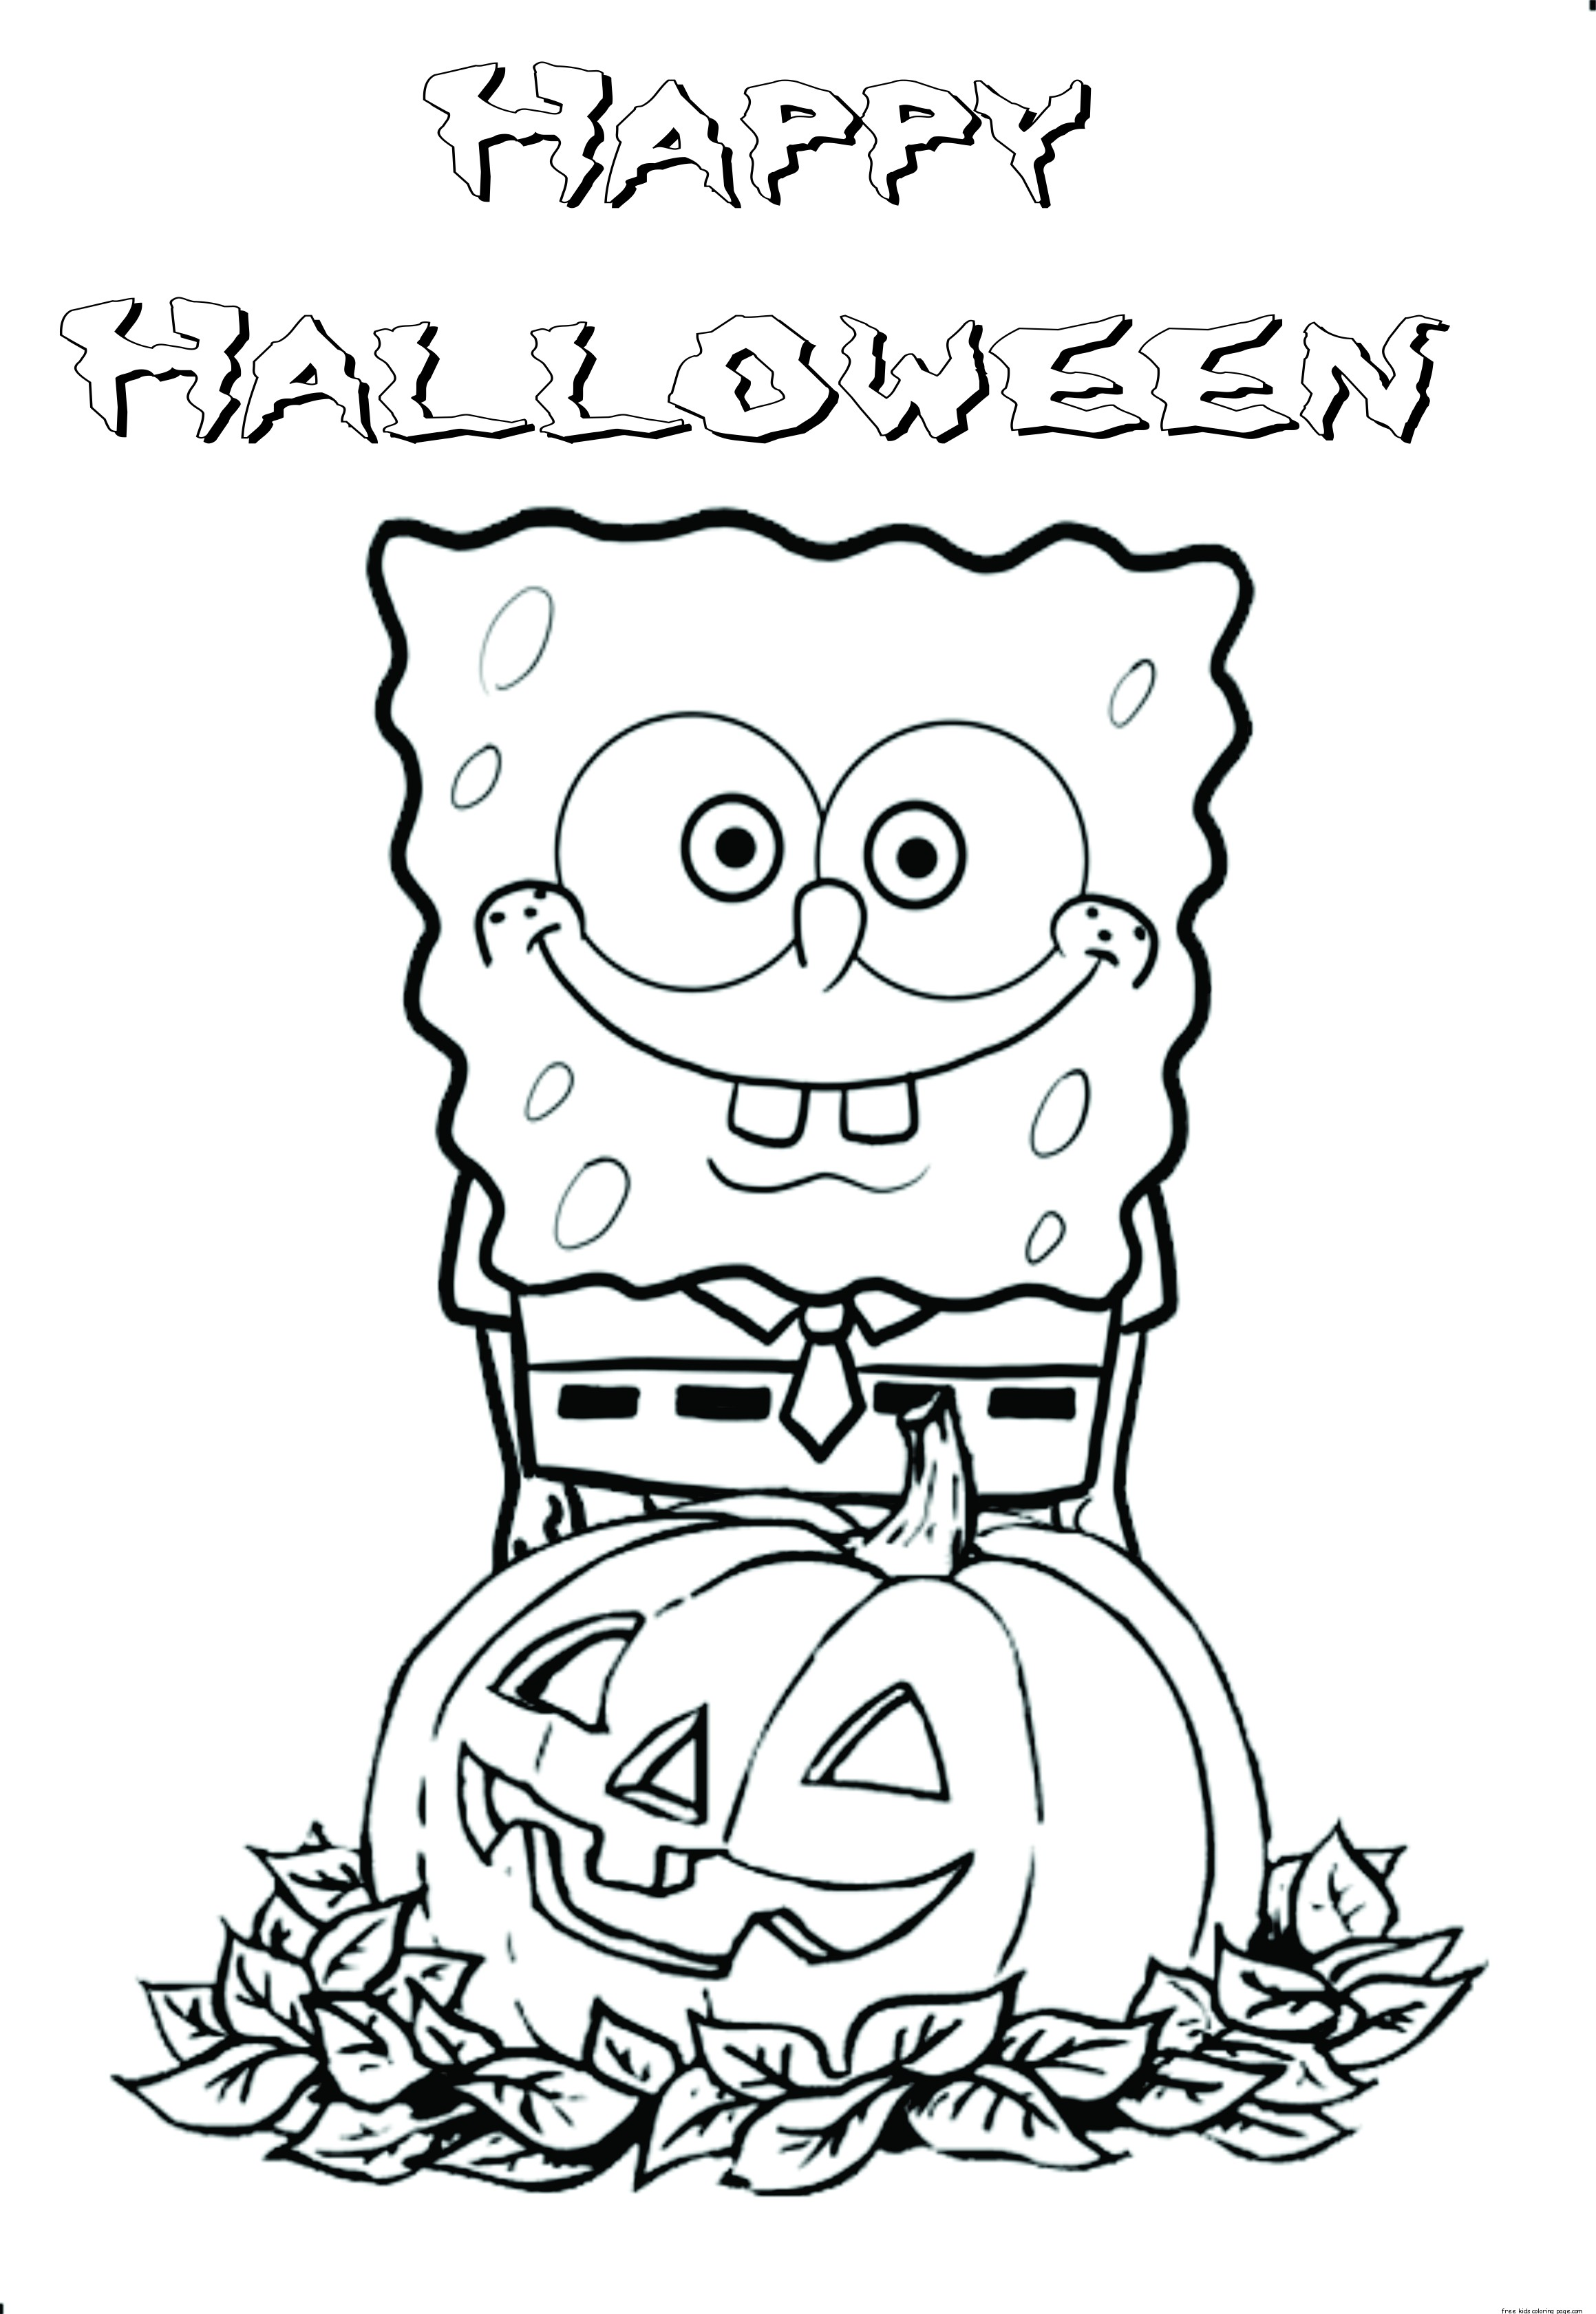 Printable halloween spongebob coloring